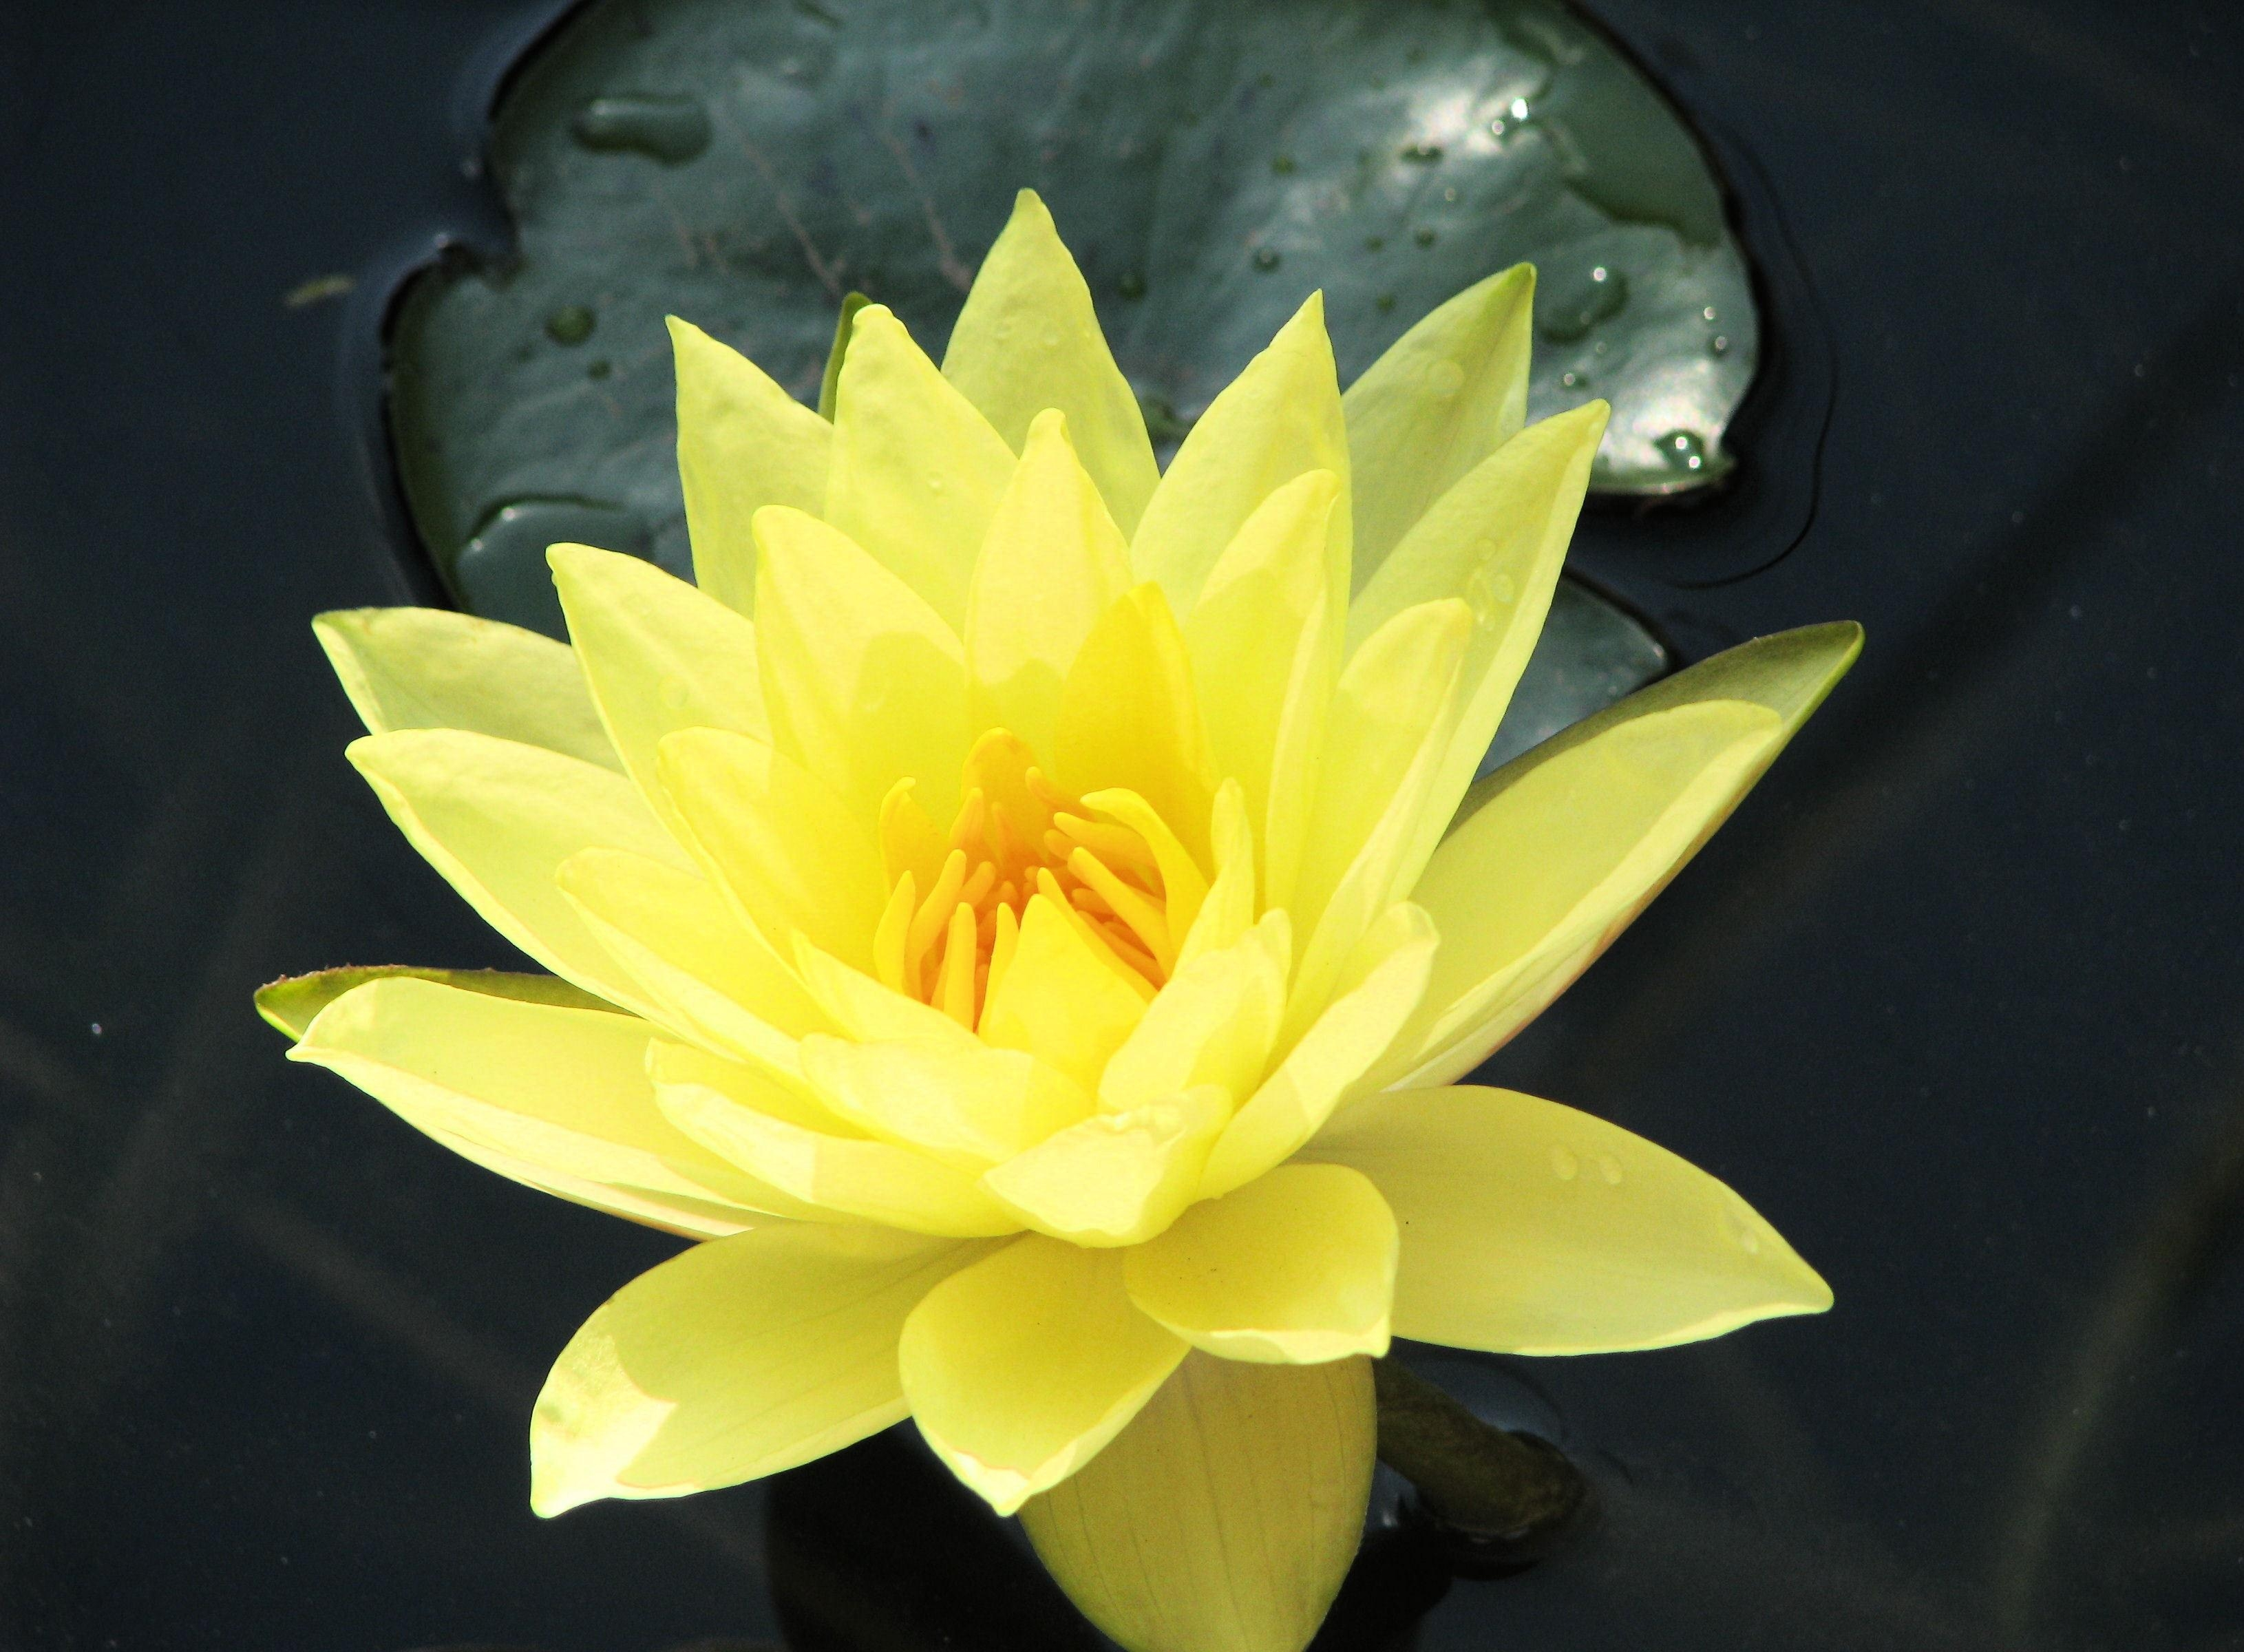 yellow water lily flower - photo #1